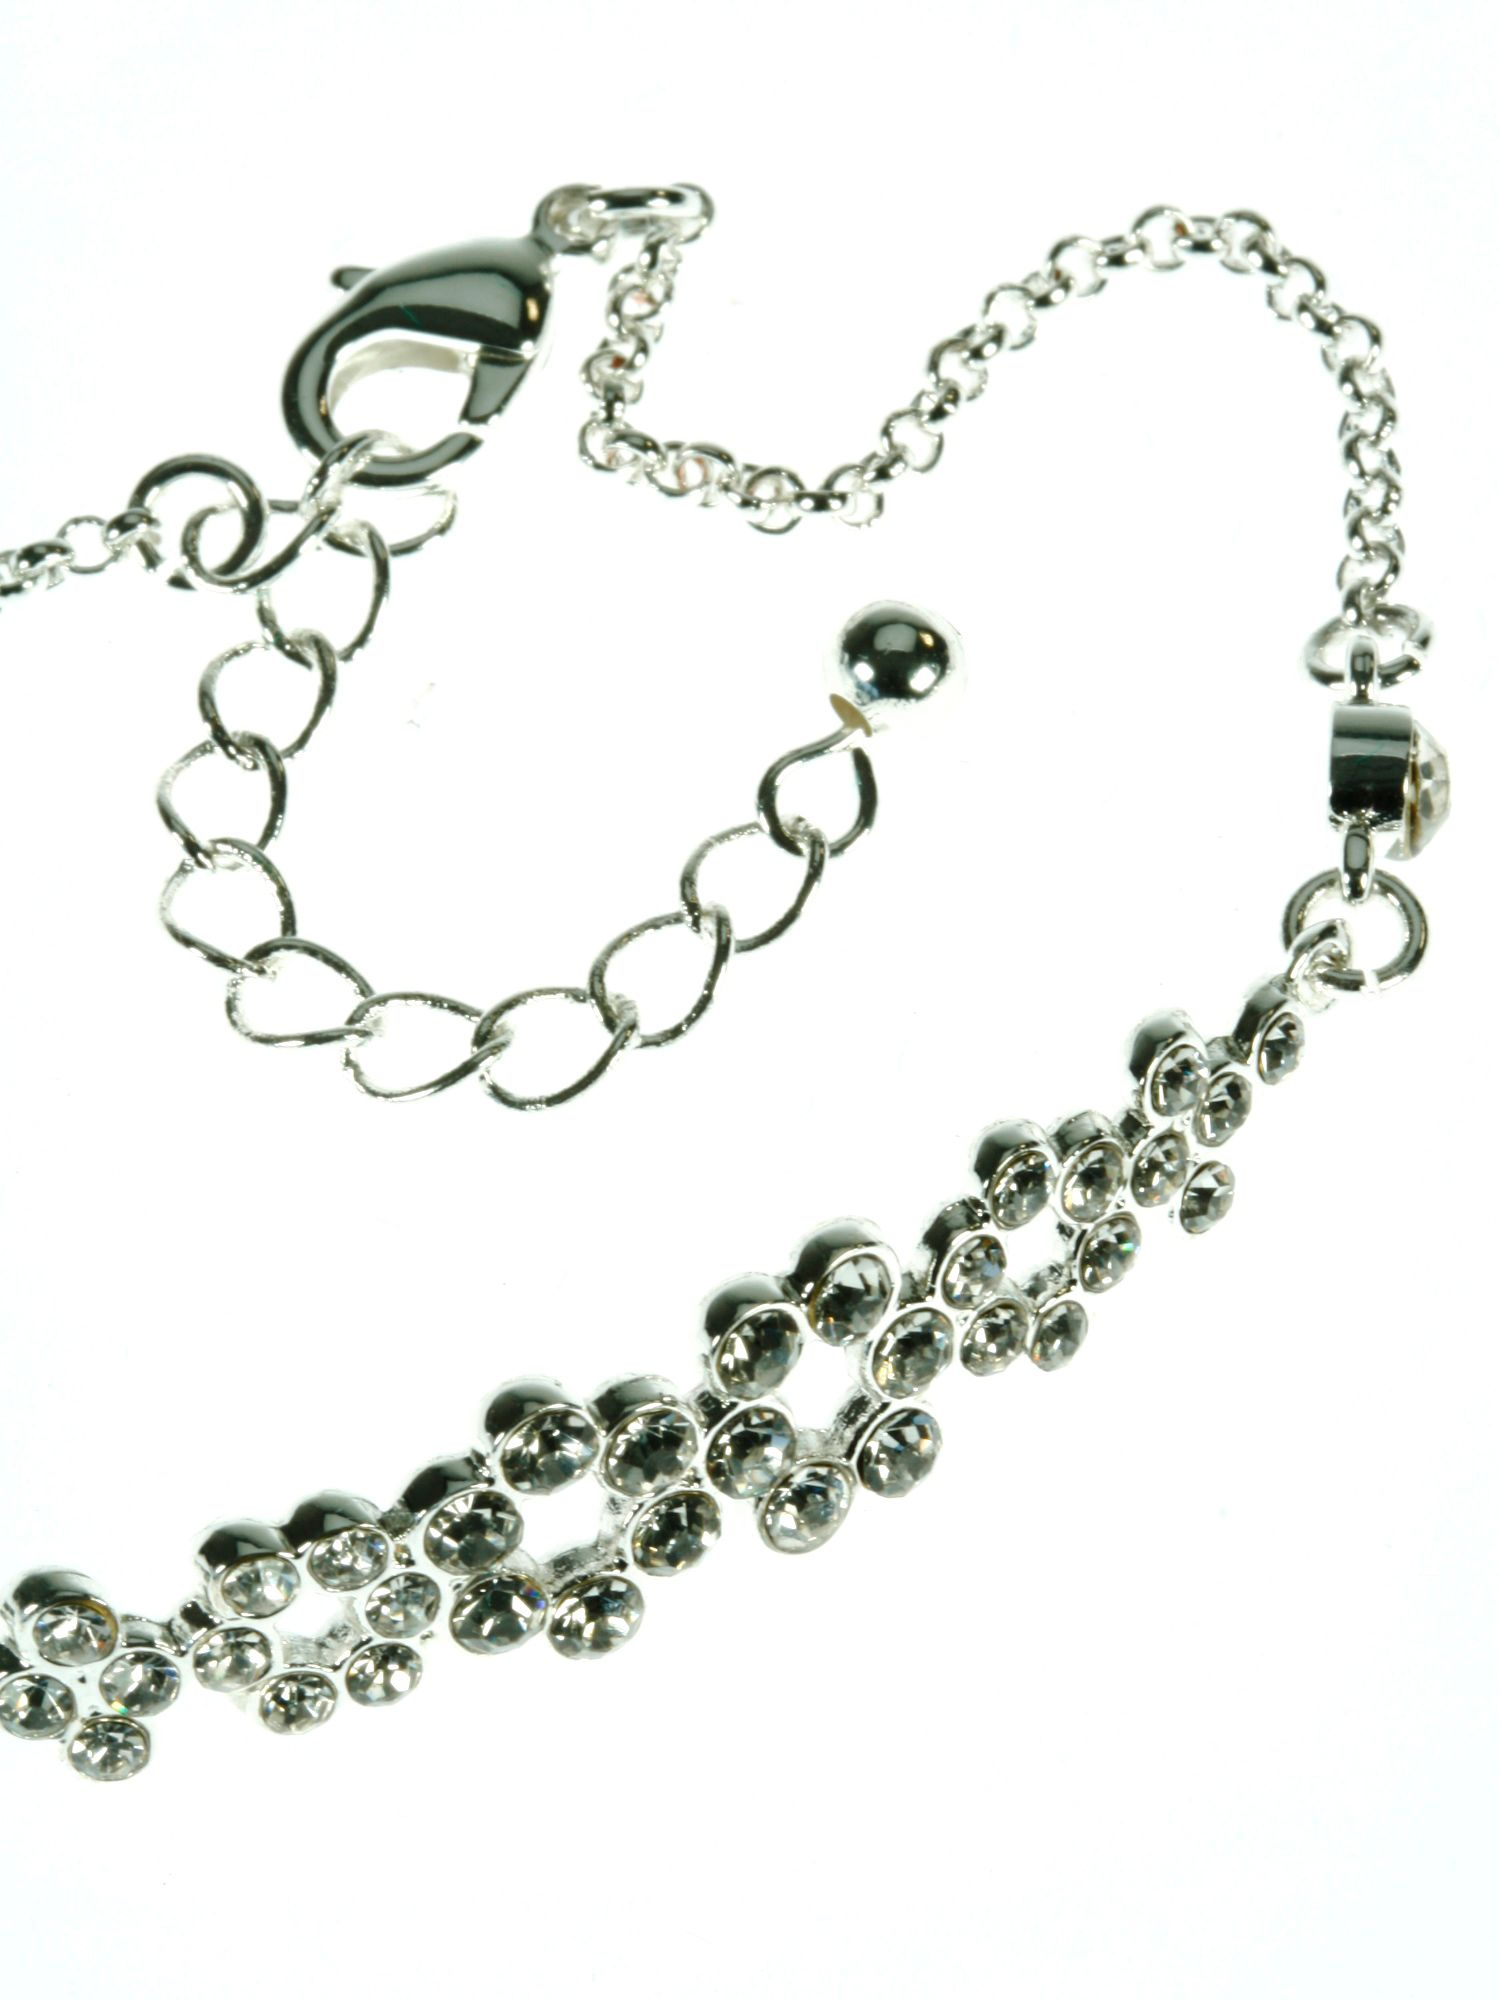 Silver plated chain clear crystals bracelet